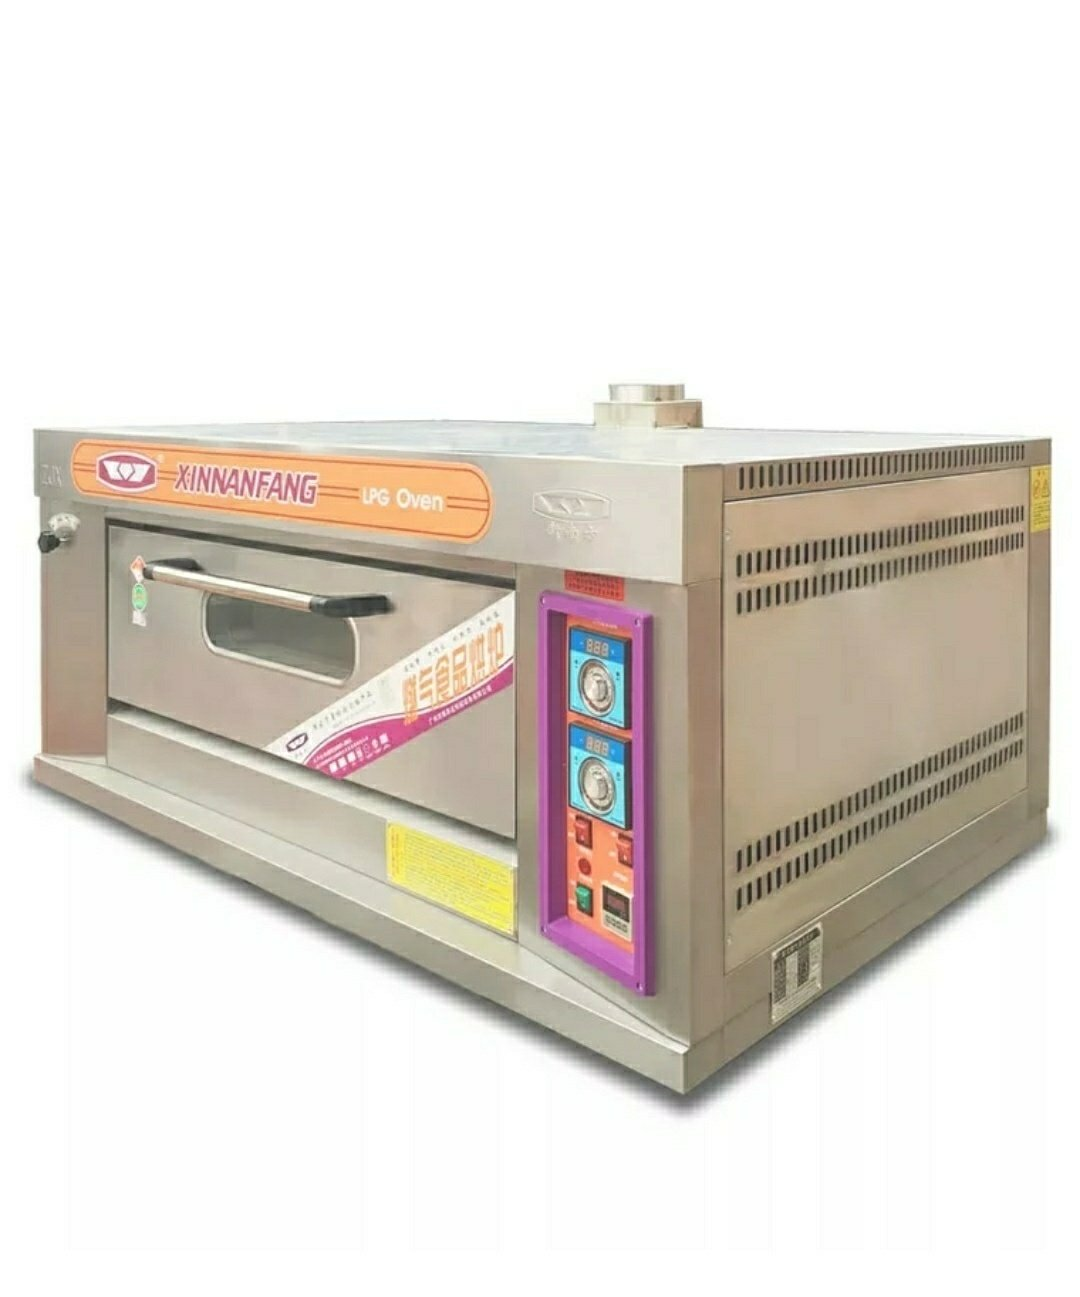 Gas Roasting / Baking Deck Type Oven, 1 Deck 2 Trays, Stainless Steel